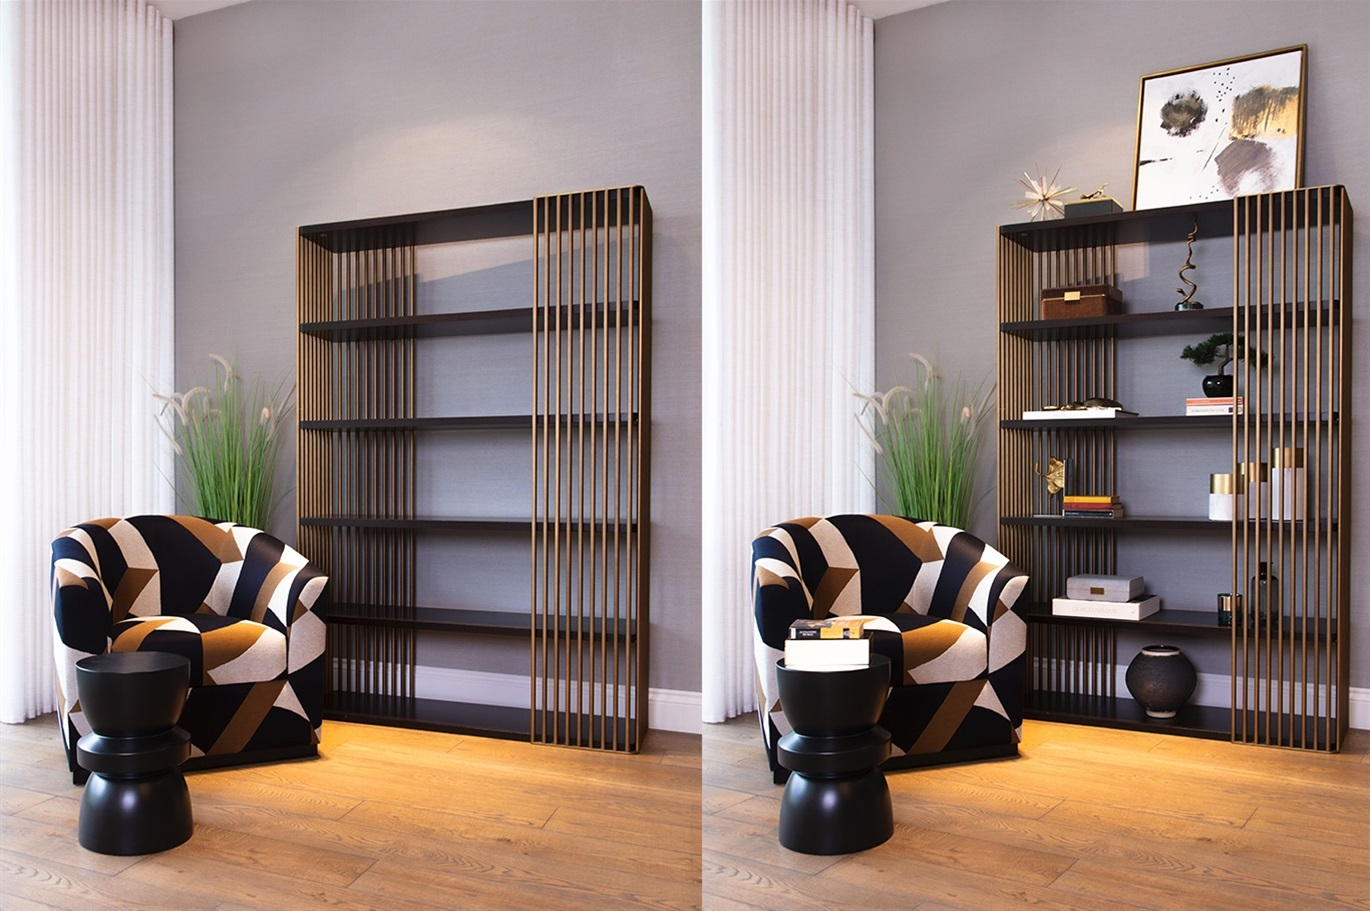 Styling your bookshelf in 2021